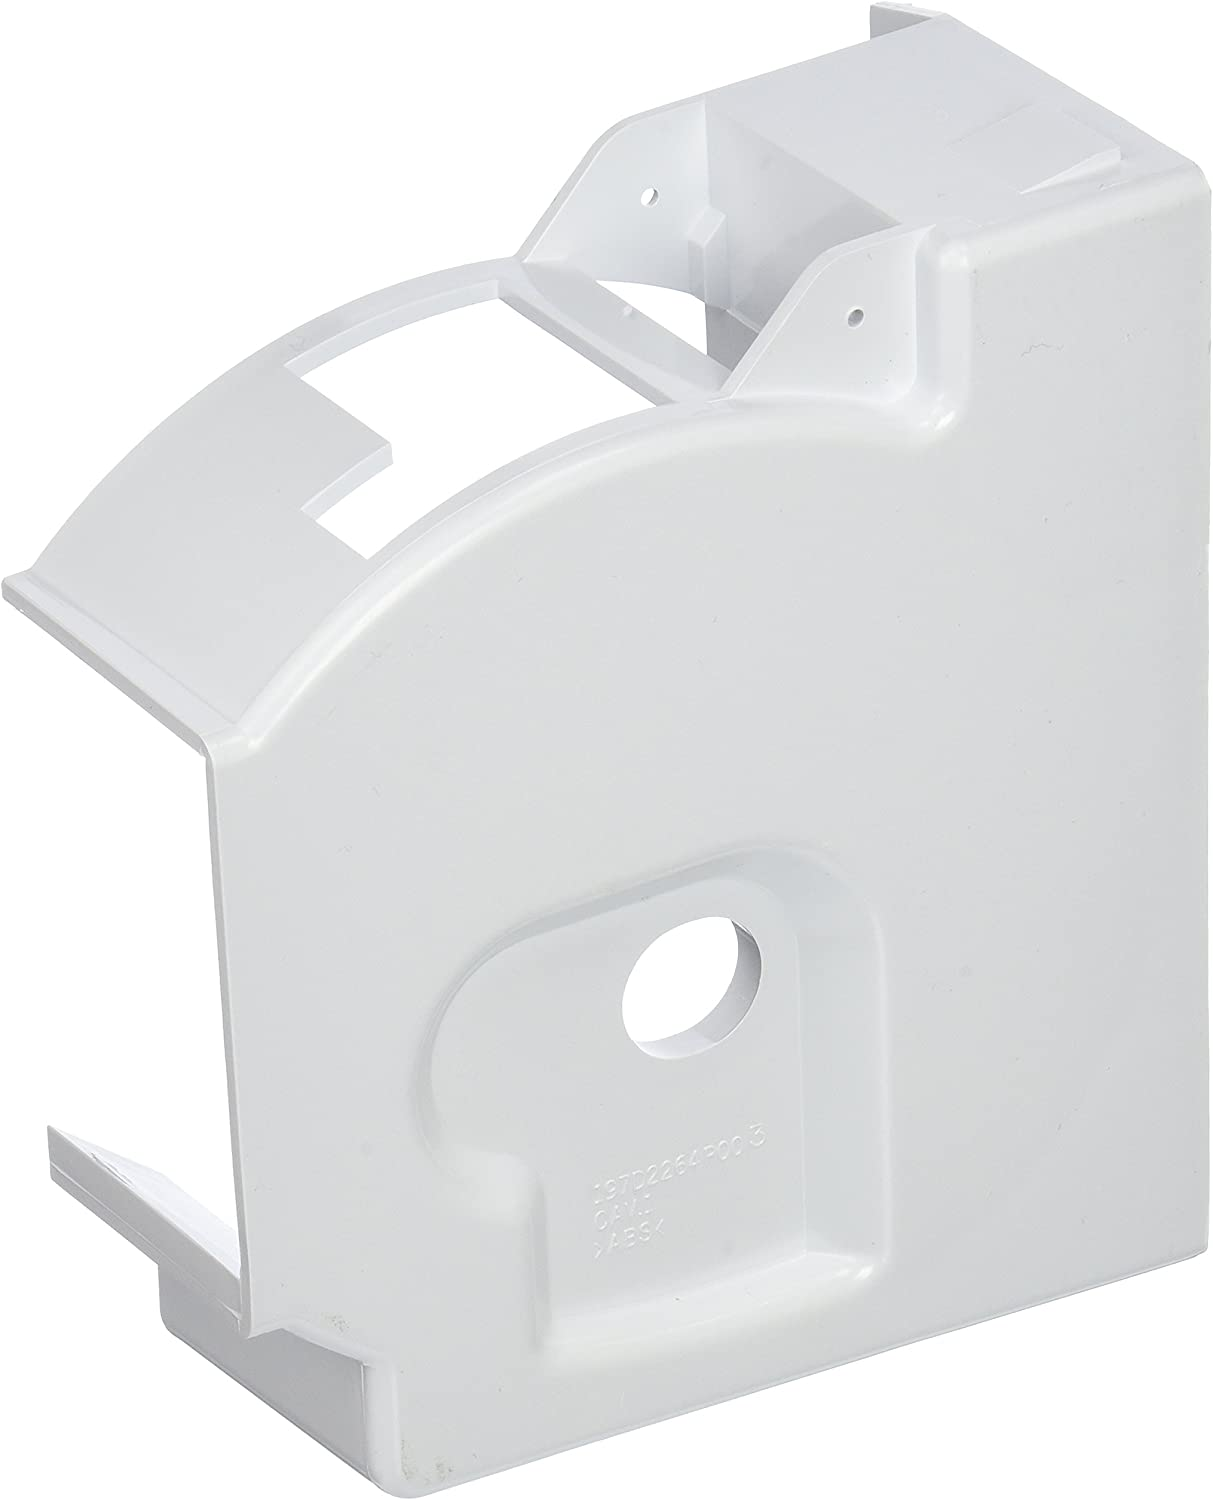 General Electric WR17X11505 Ice Bucket Housing